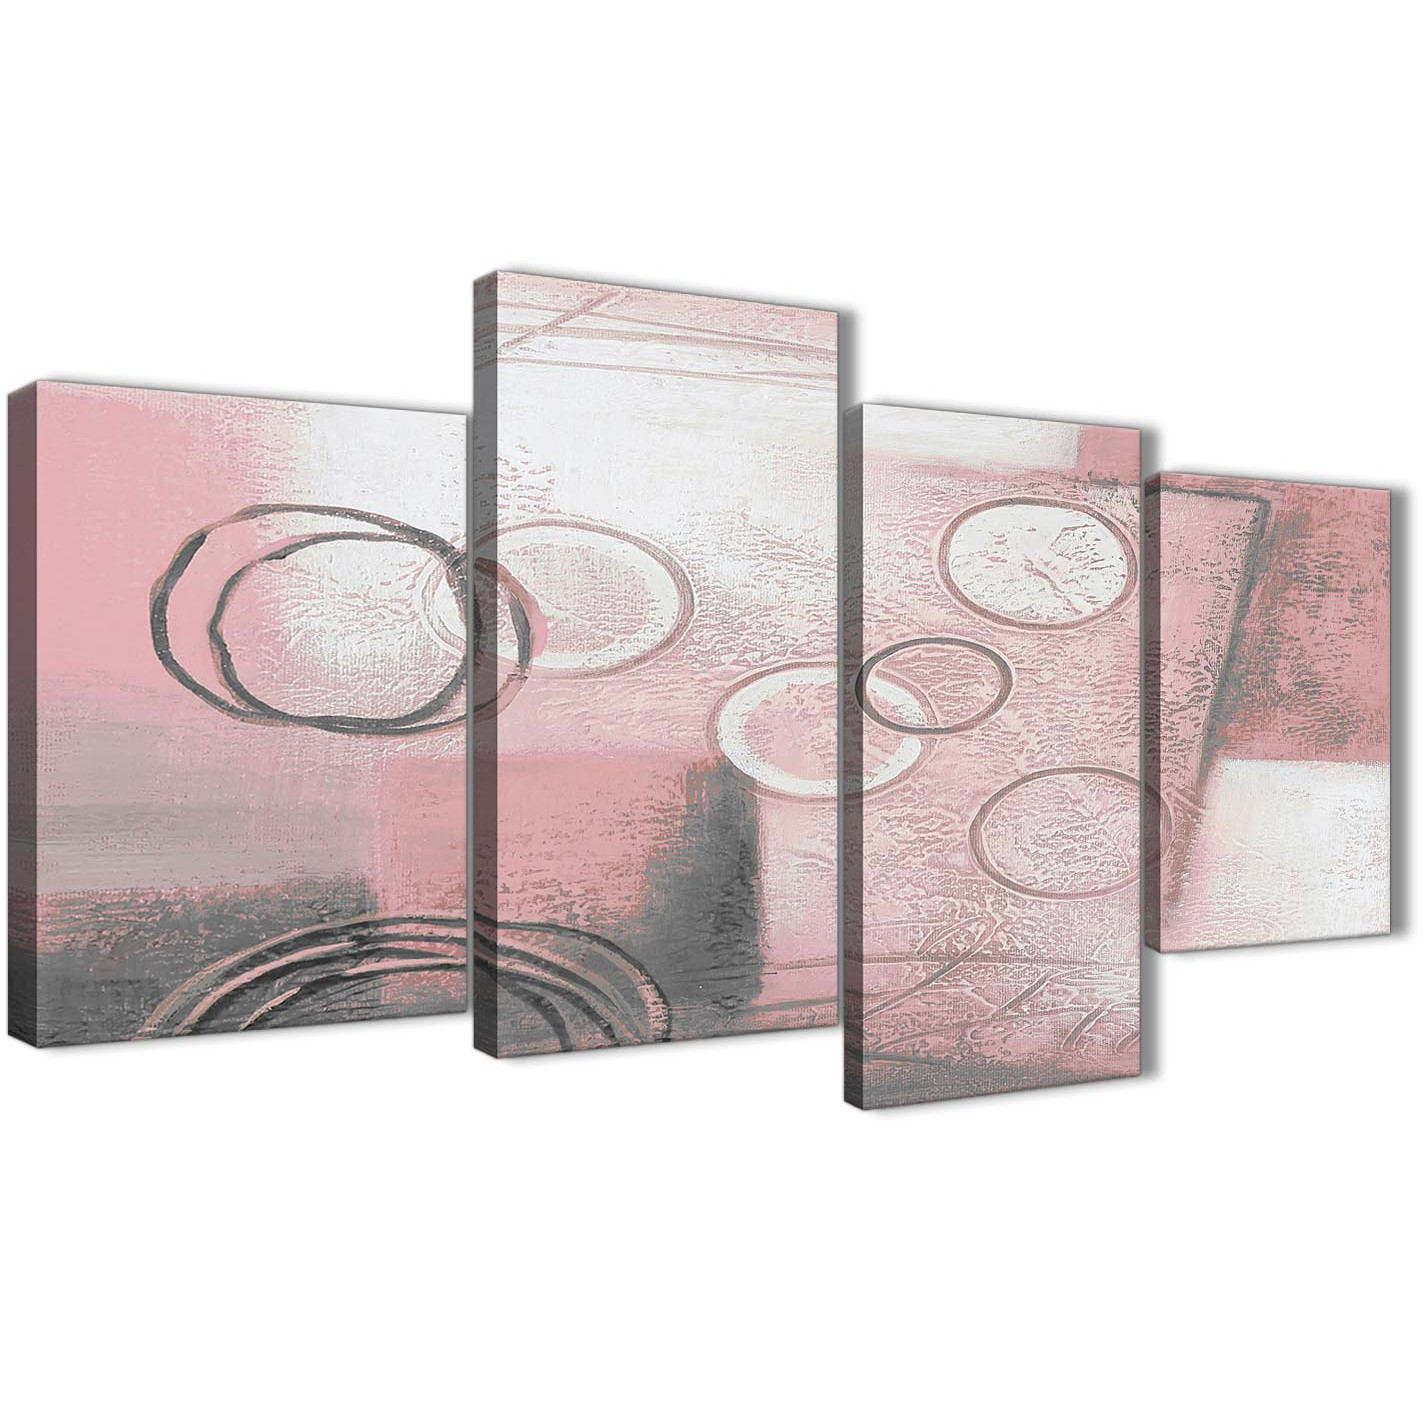 Large blush pink grey painting abstract living room canvas wall art decor 4433 130cm set of prints